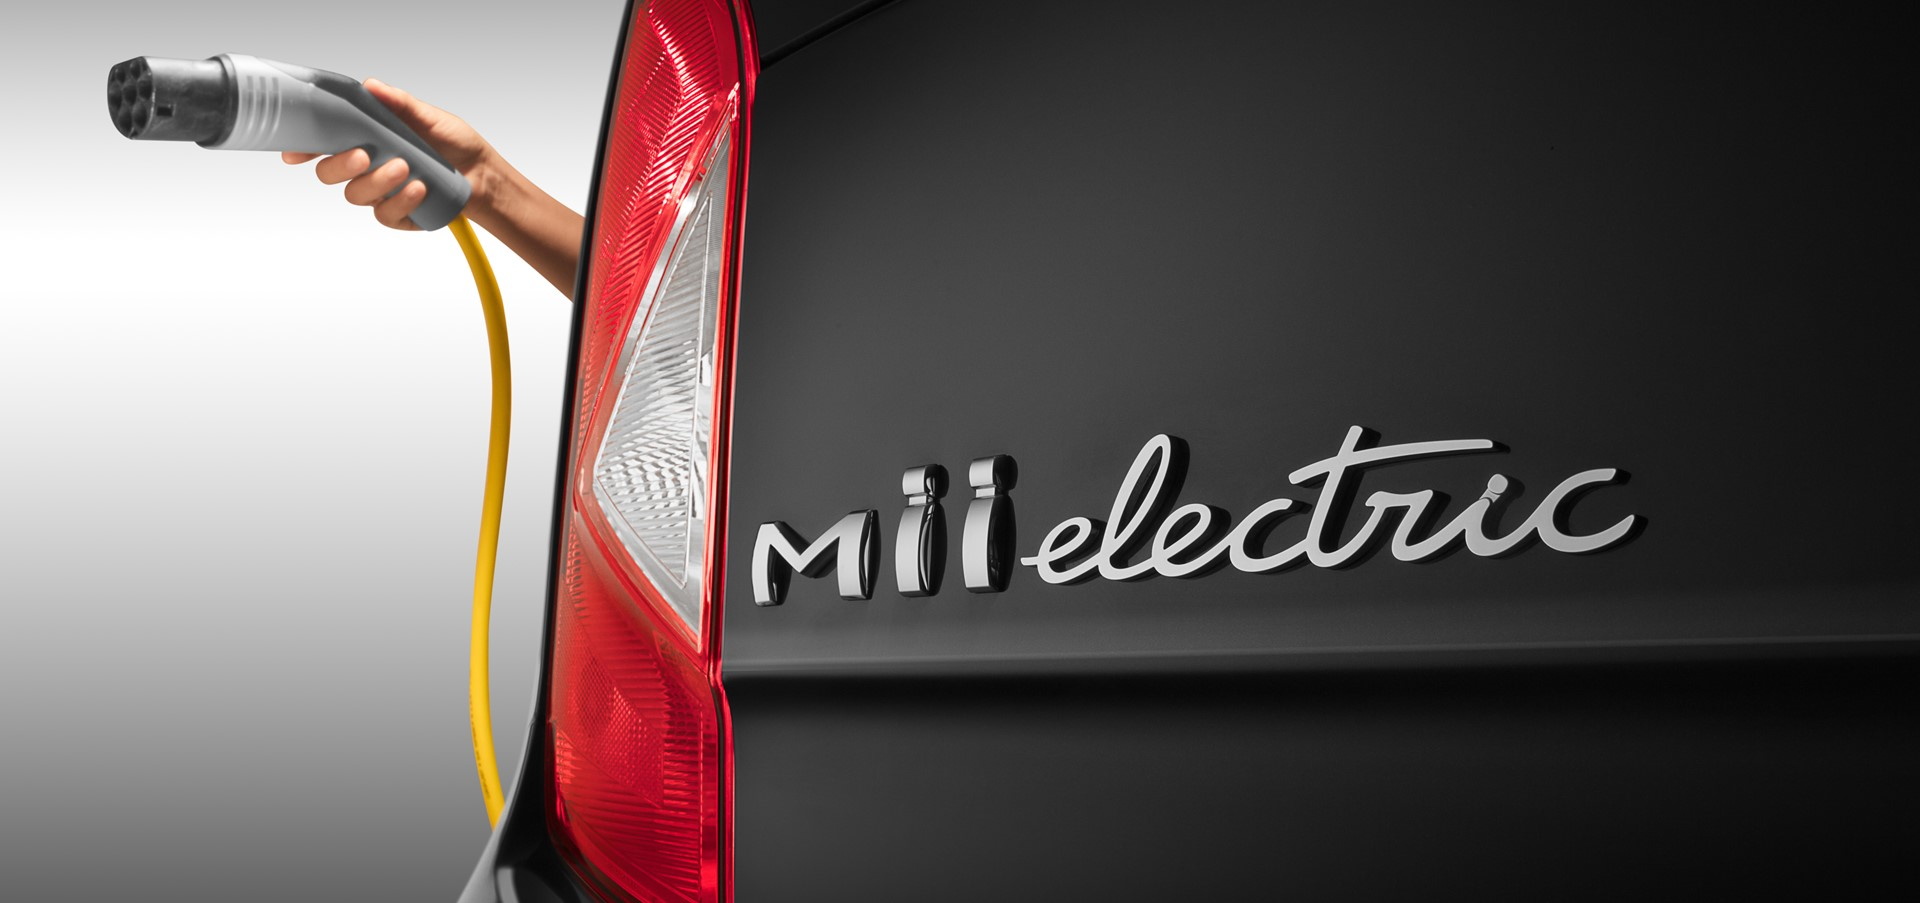 SEAT begins its electric offensive by introducing the Mii El